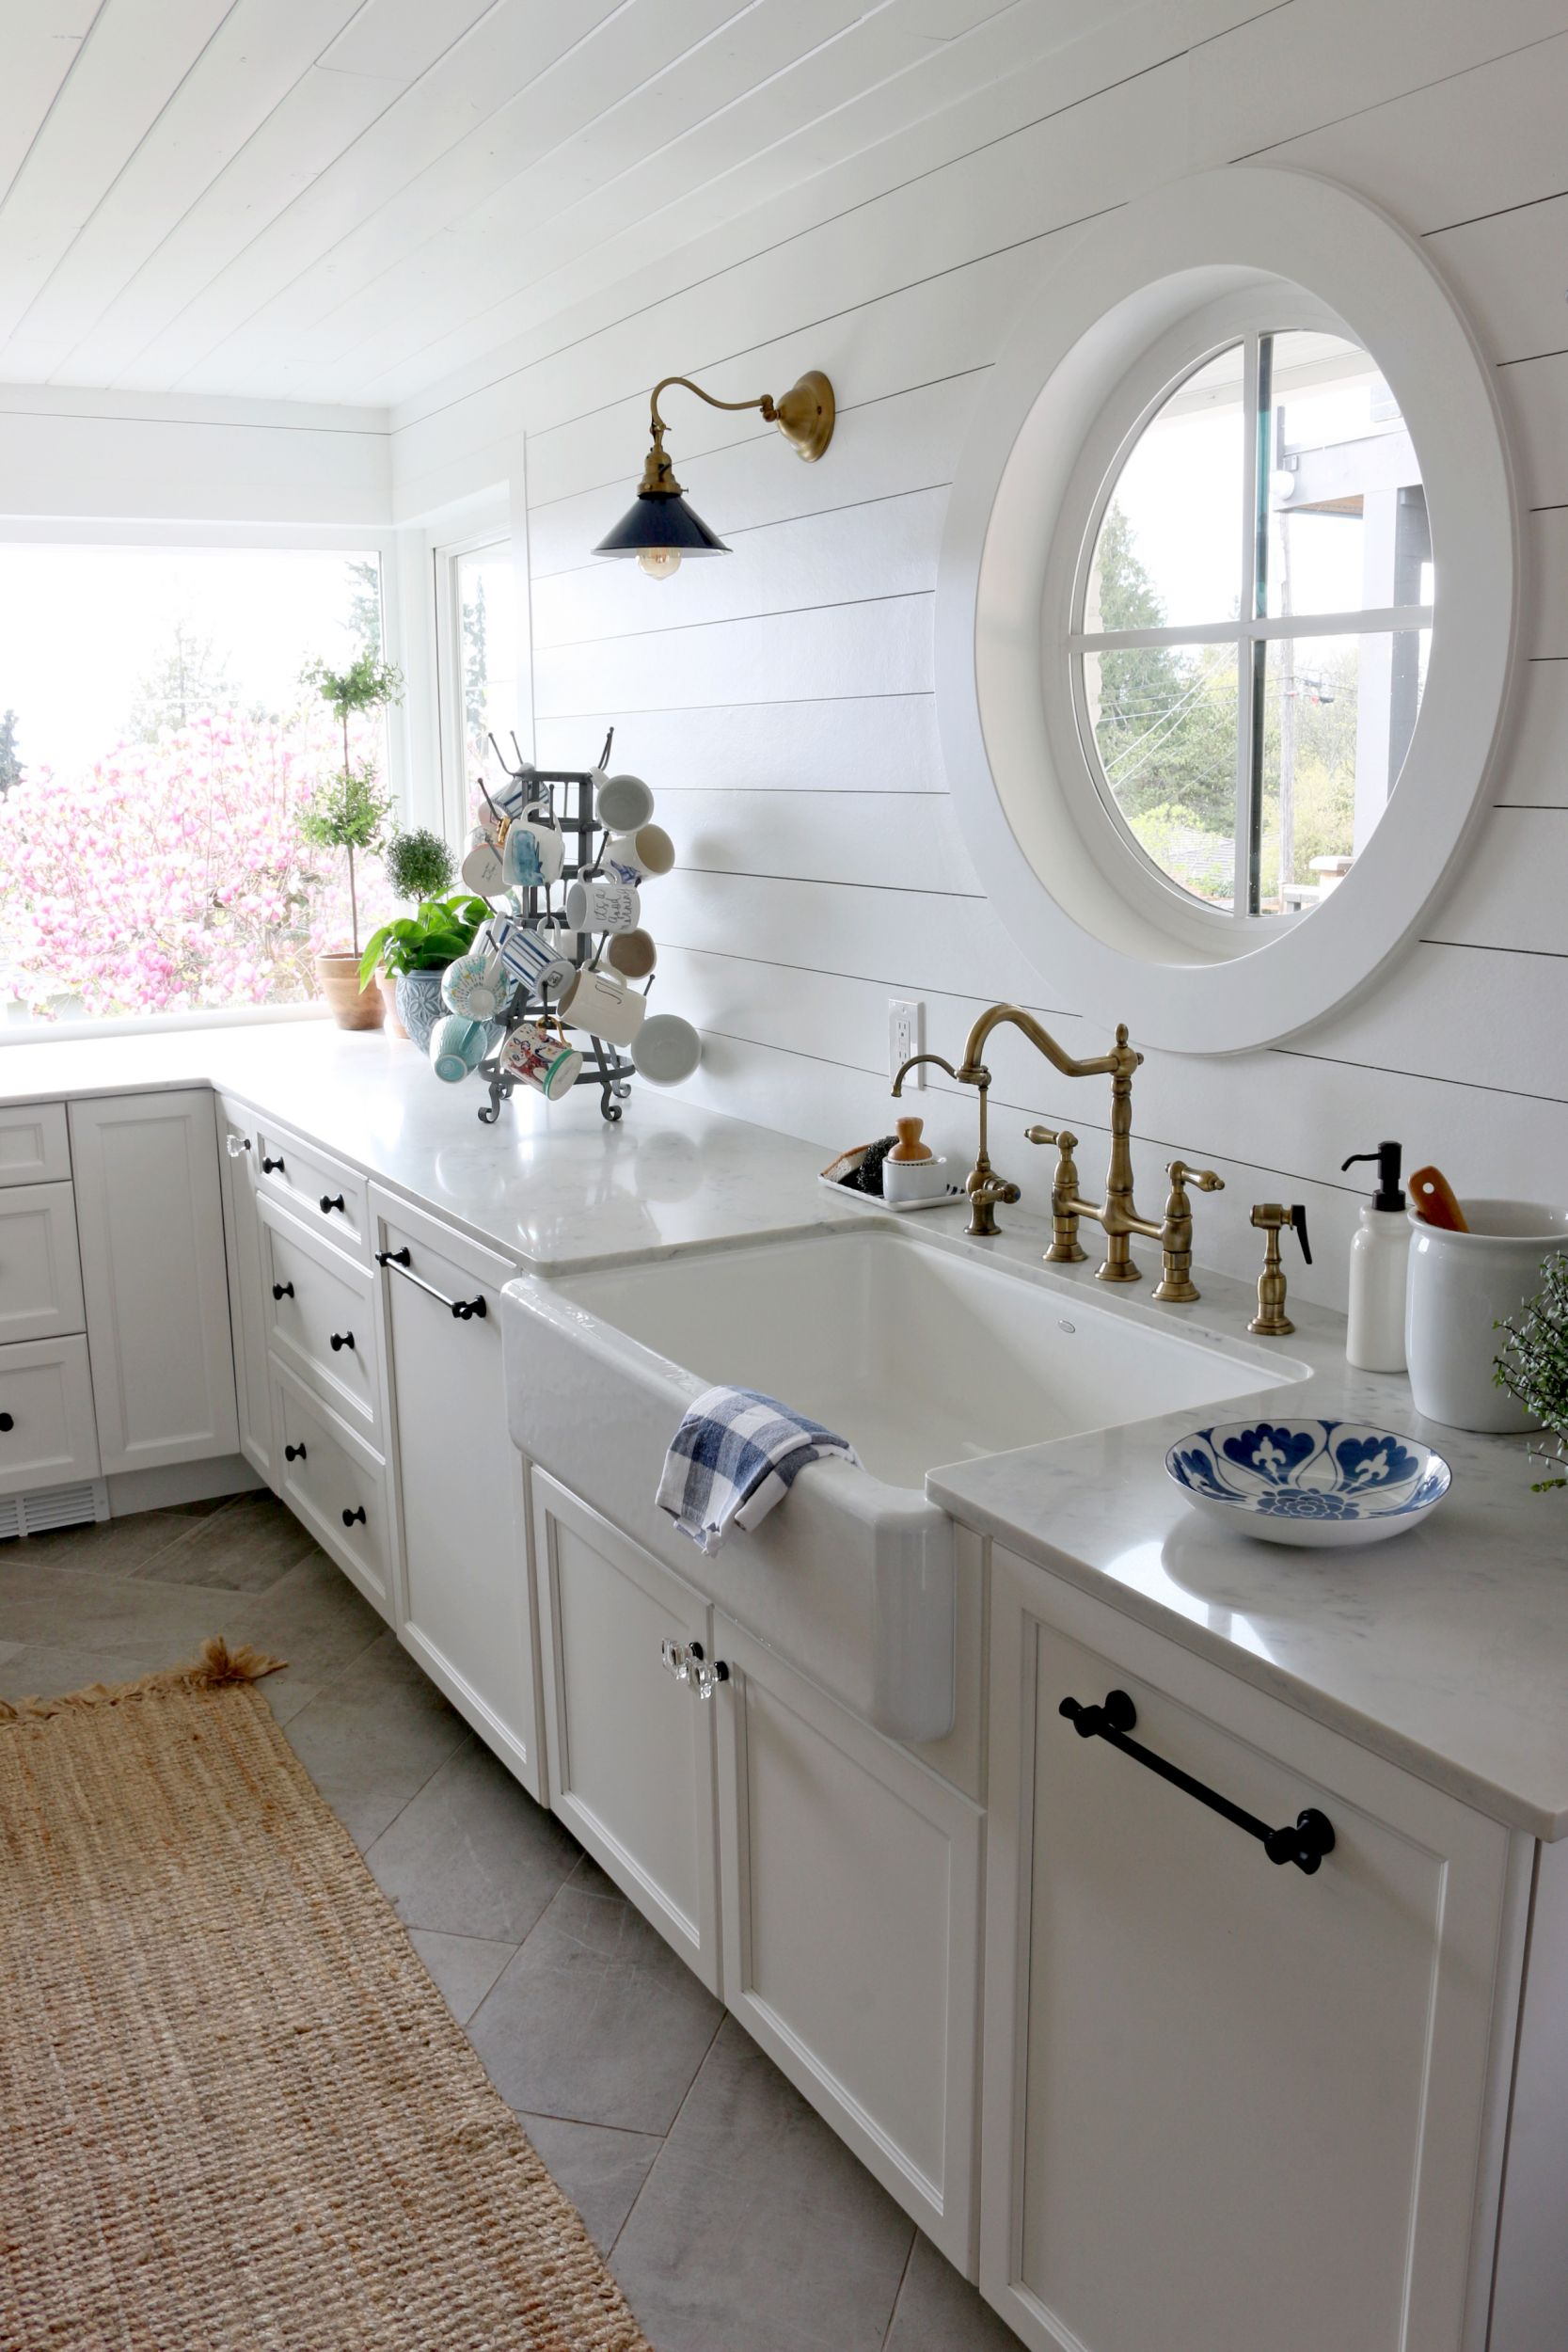 quartz city that farmhouse snapshot experimental countertop alternative marble like carrara looks dreamy